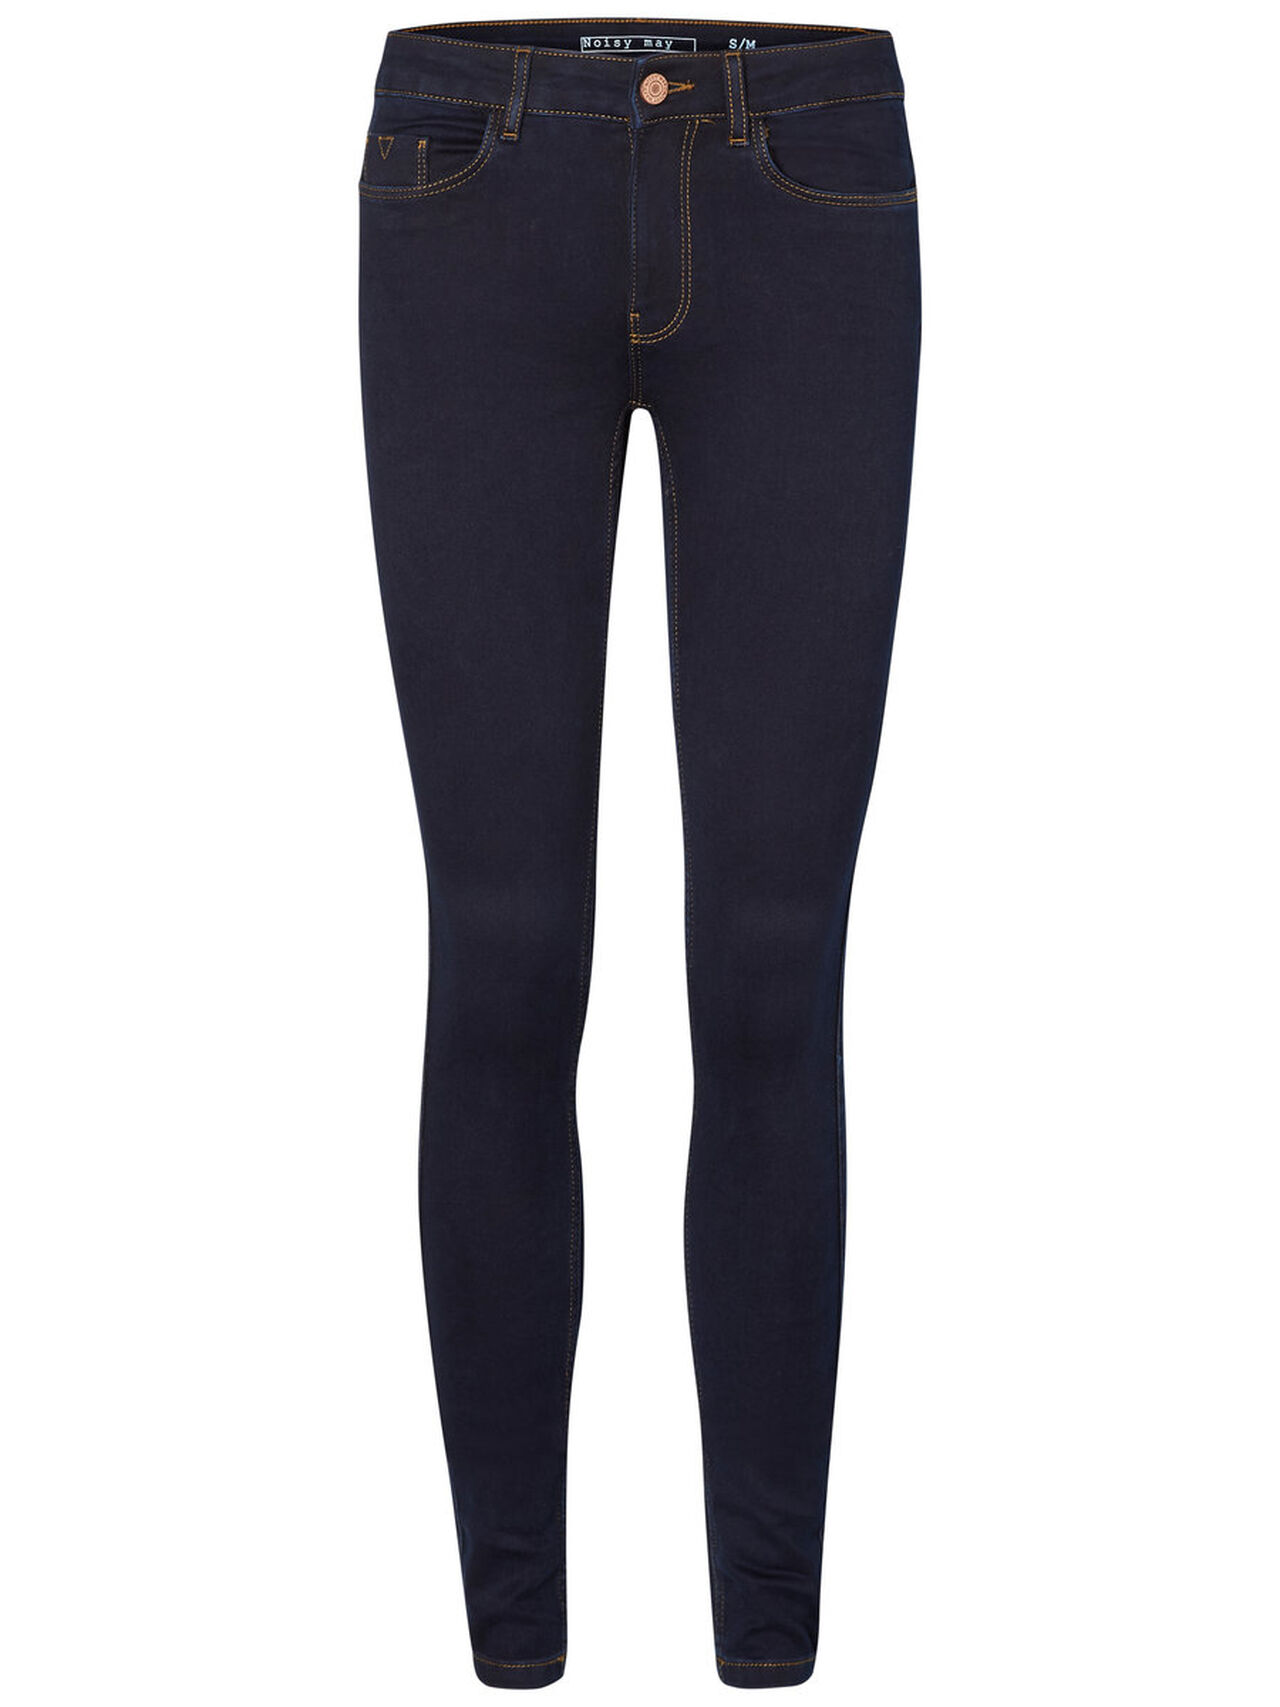 NOISY MAY Extreme Lucy Nw Skinny Fit Jeans Damen Blau